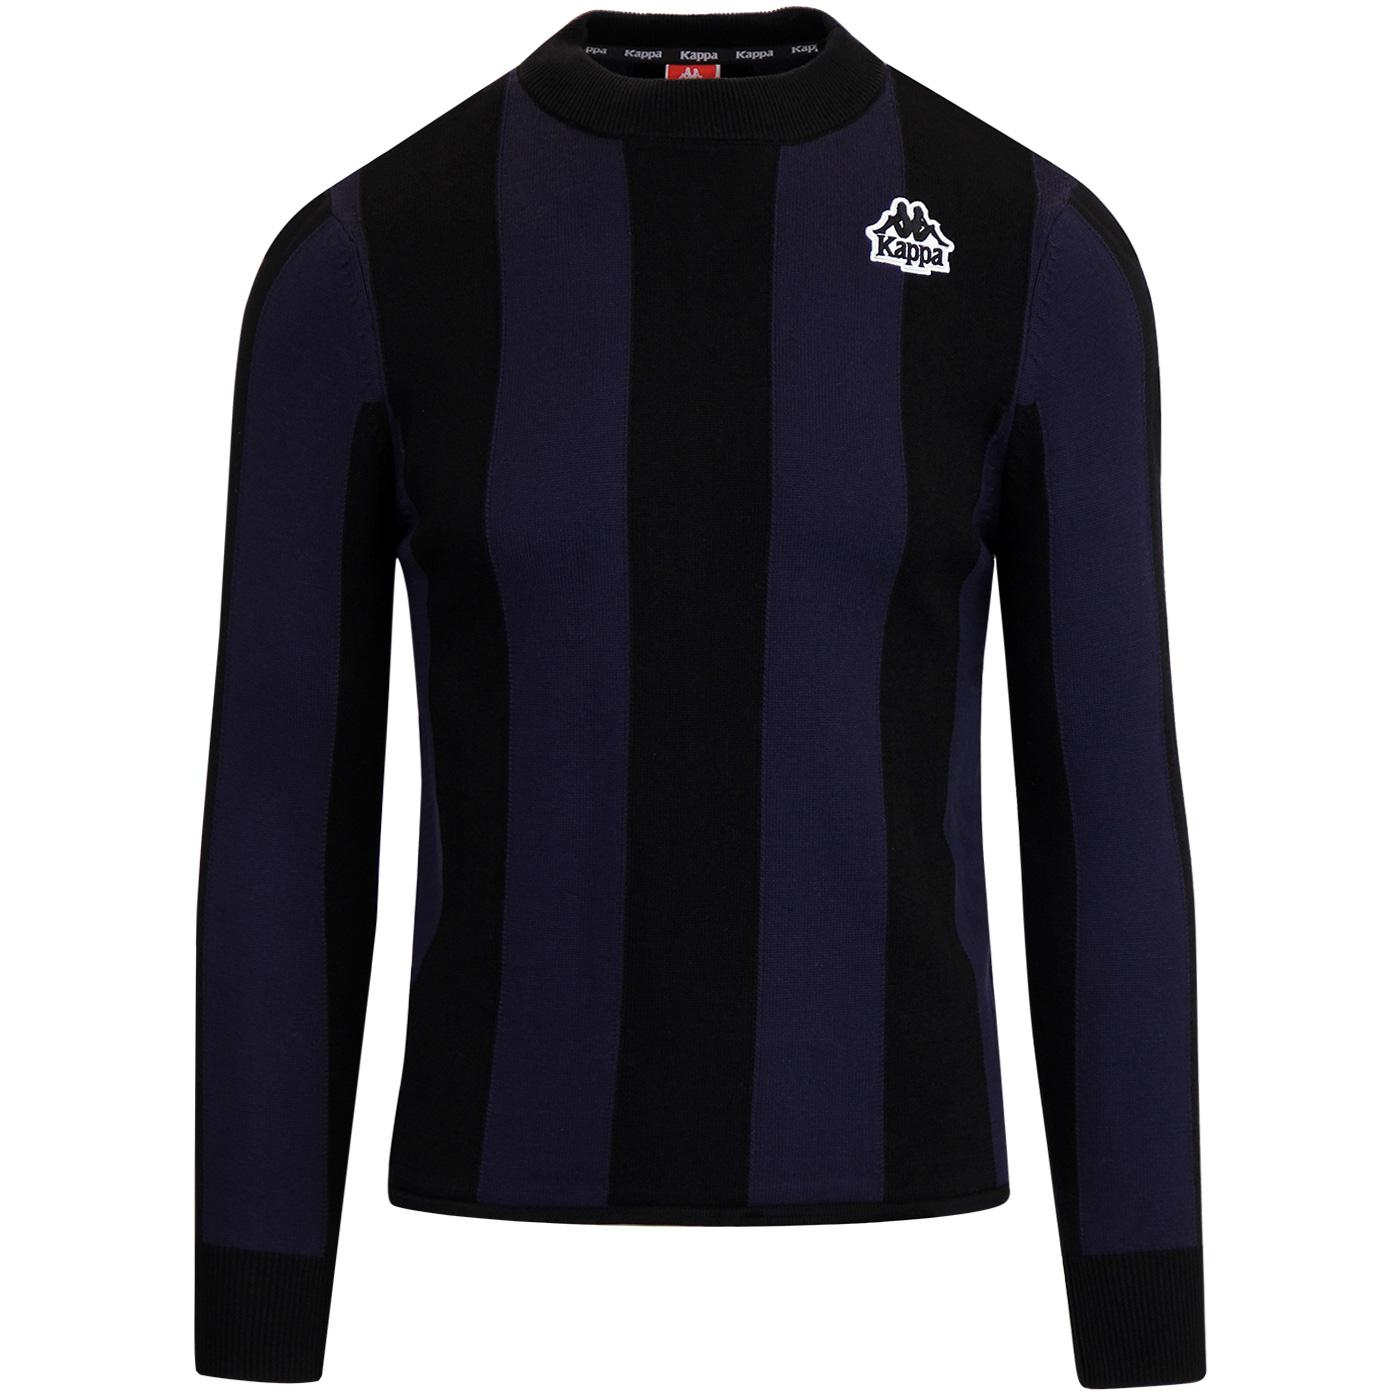 Ayrone KAPPA Retro 80s Football Stripe Jumper BLUE